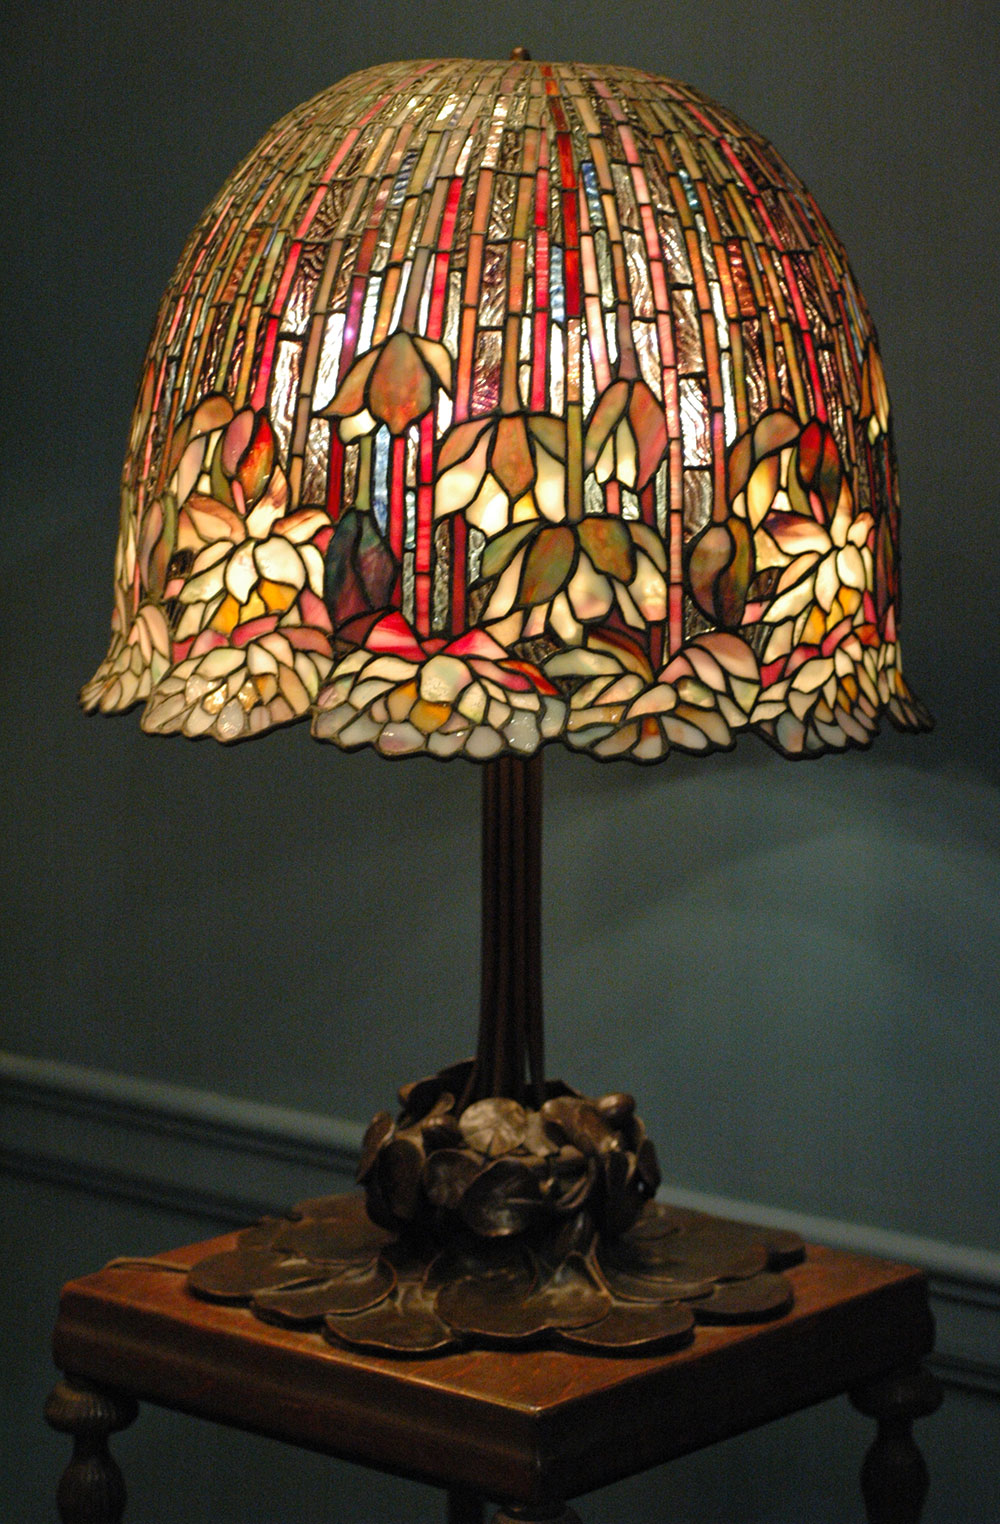 14 Patterns Of Biophilic Design Light Fixture In The Office Heres How We Did It Seven Easy A Louis Comfort Tiffany Lamp With Flower Pattern